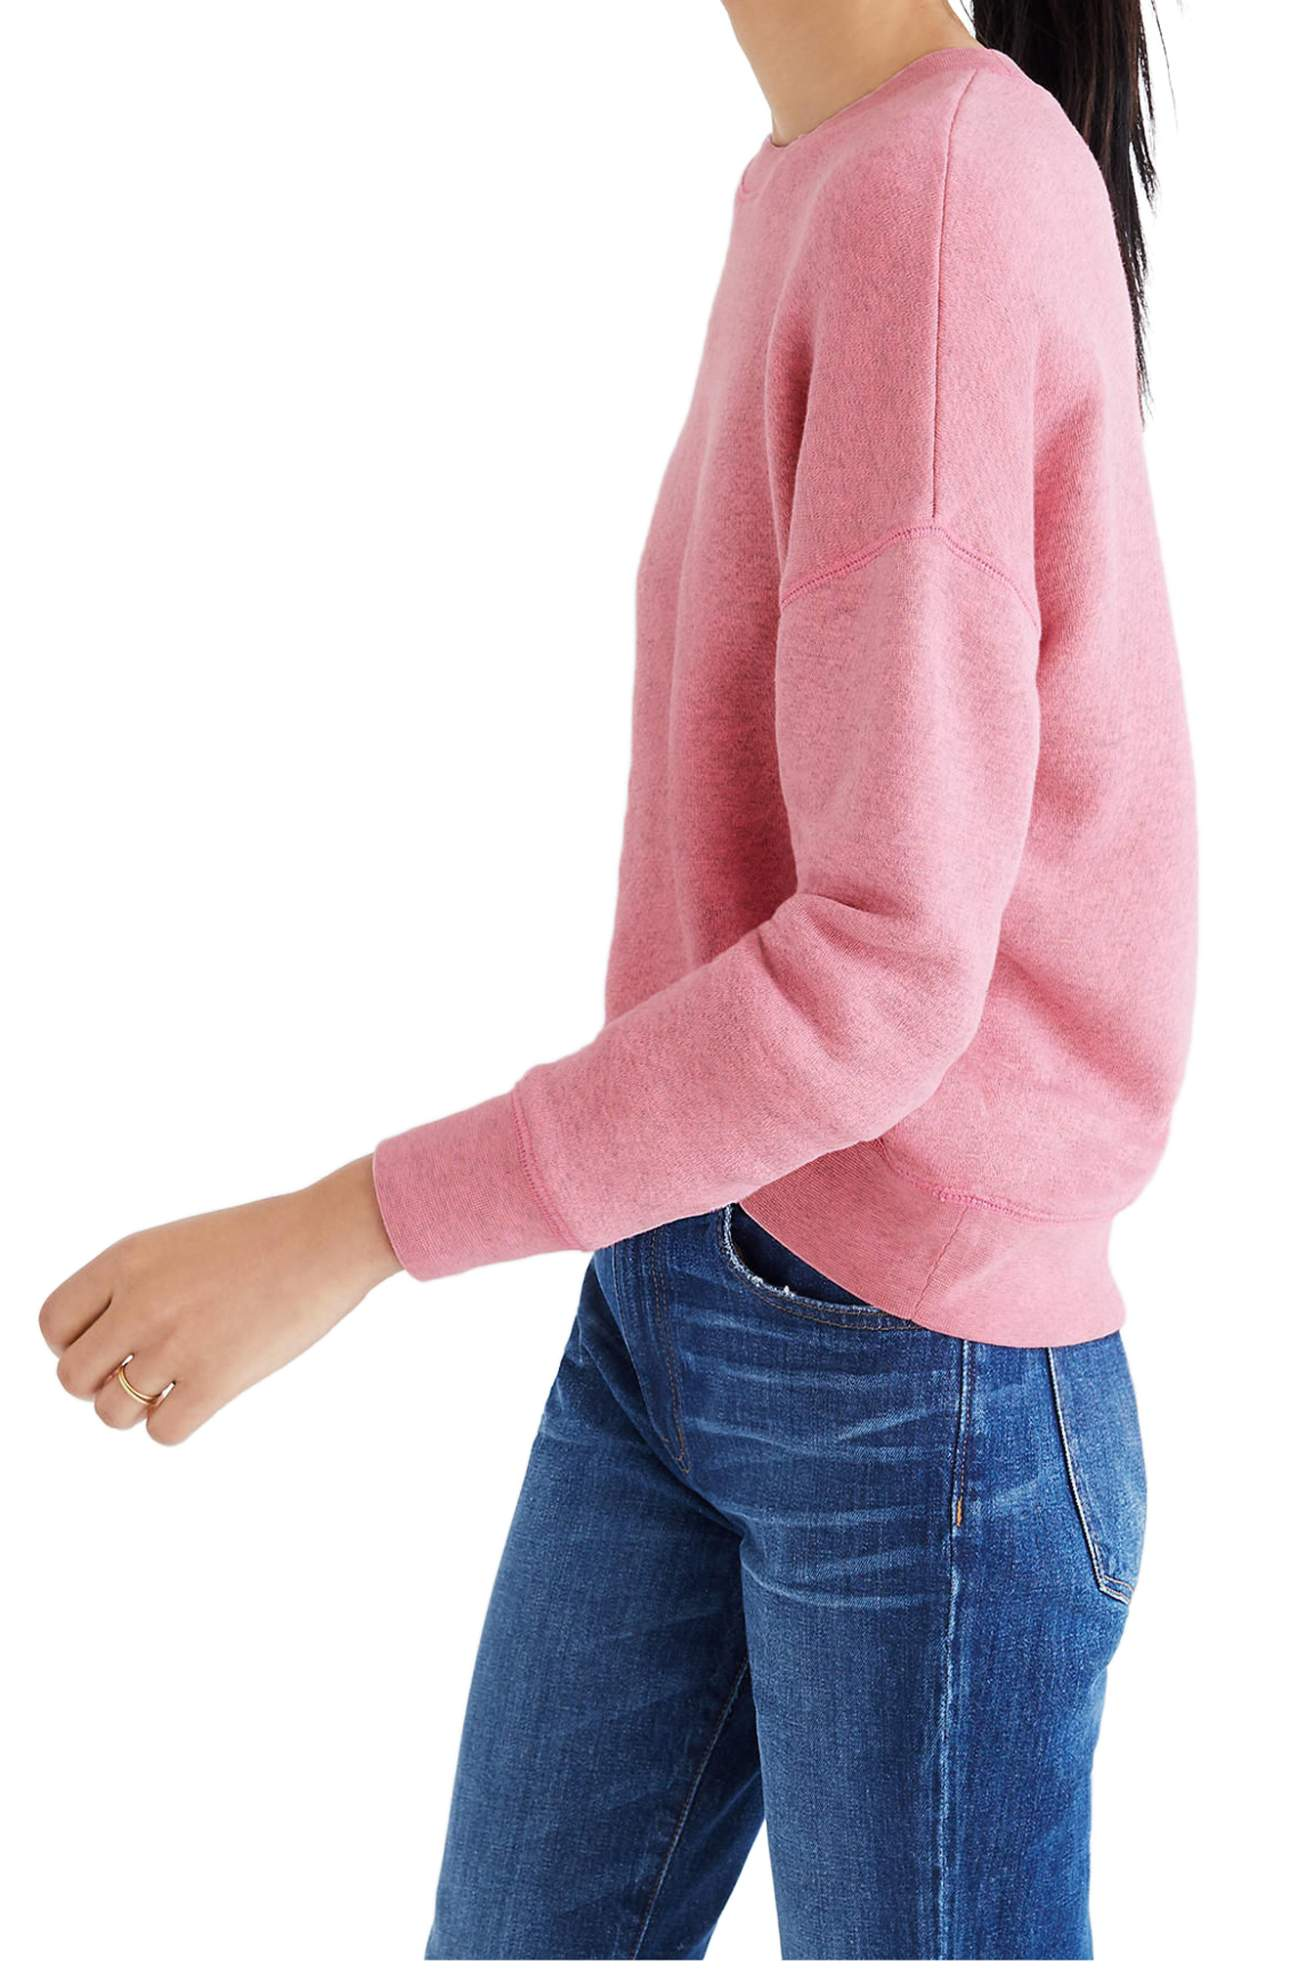 Mainstay Sweatshirt/Madewell was originally $75 and is now $54.99 classic crewneck sweater is spun from plush French terry to keep you cozy during chilly days and nights.(Image: Nordstrom)